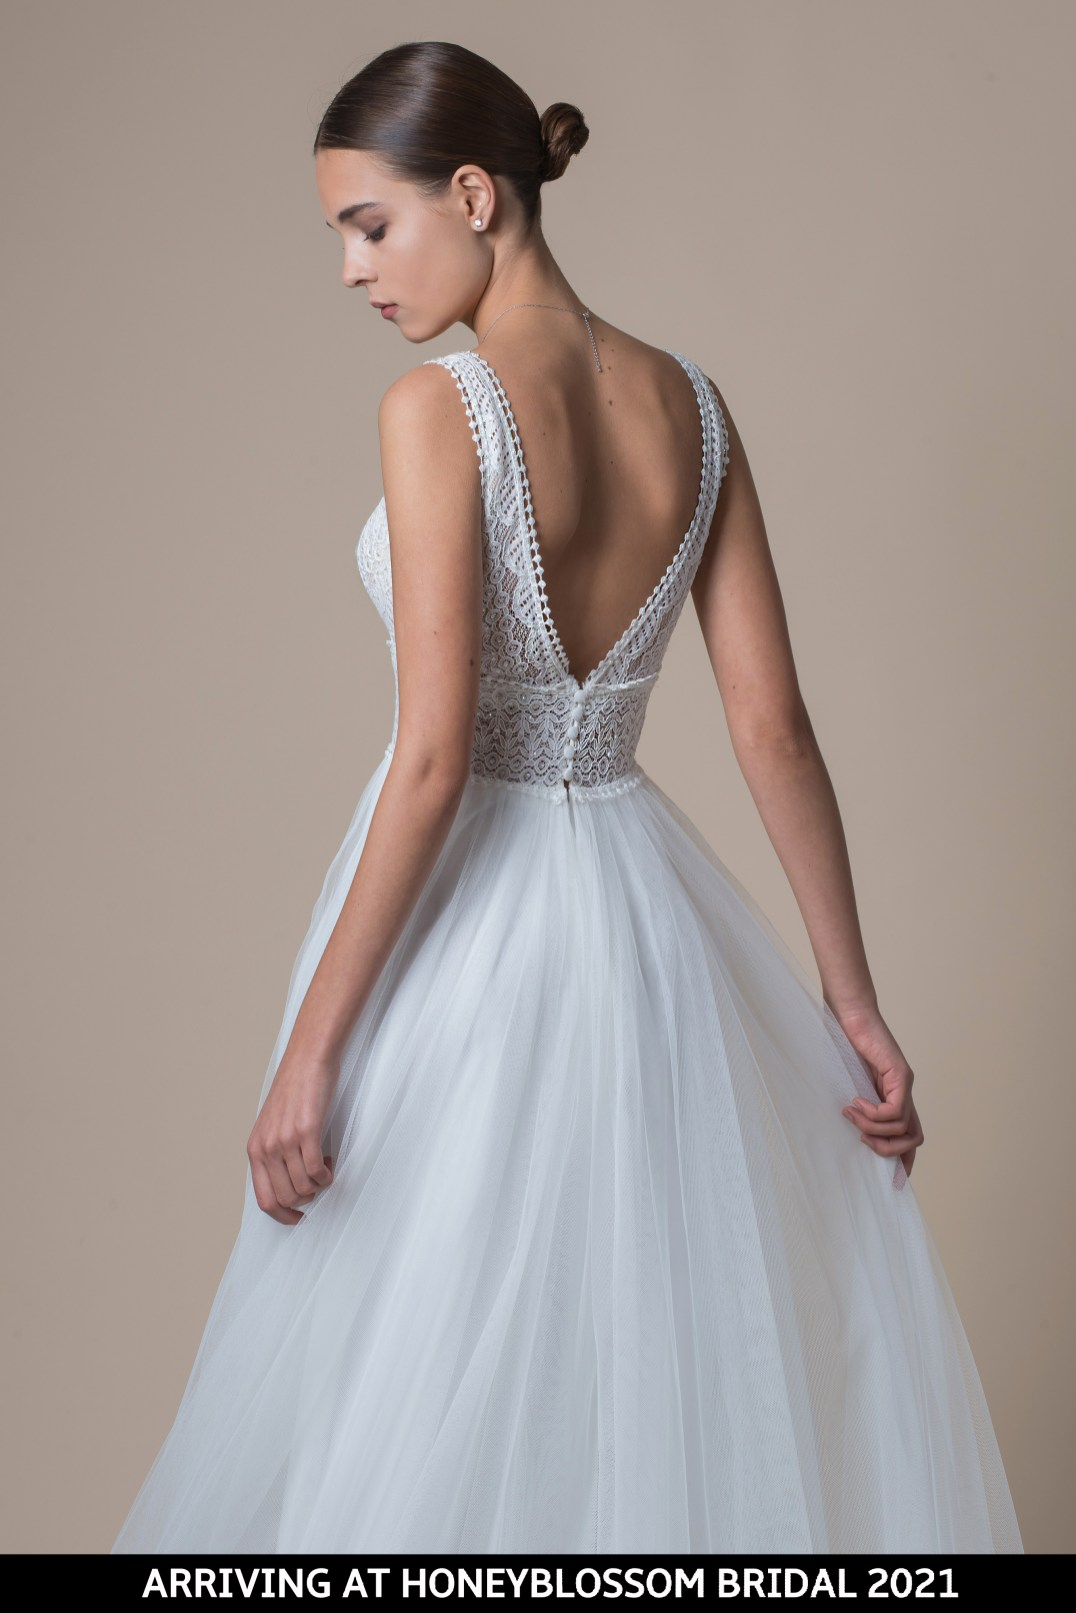 MiaMia McKenzie bridal gown arriving soon to Honeyblossom Bridal